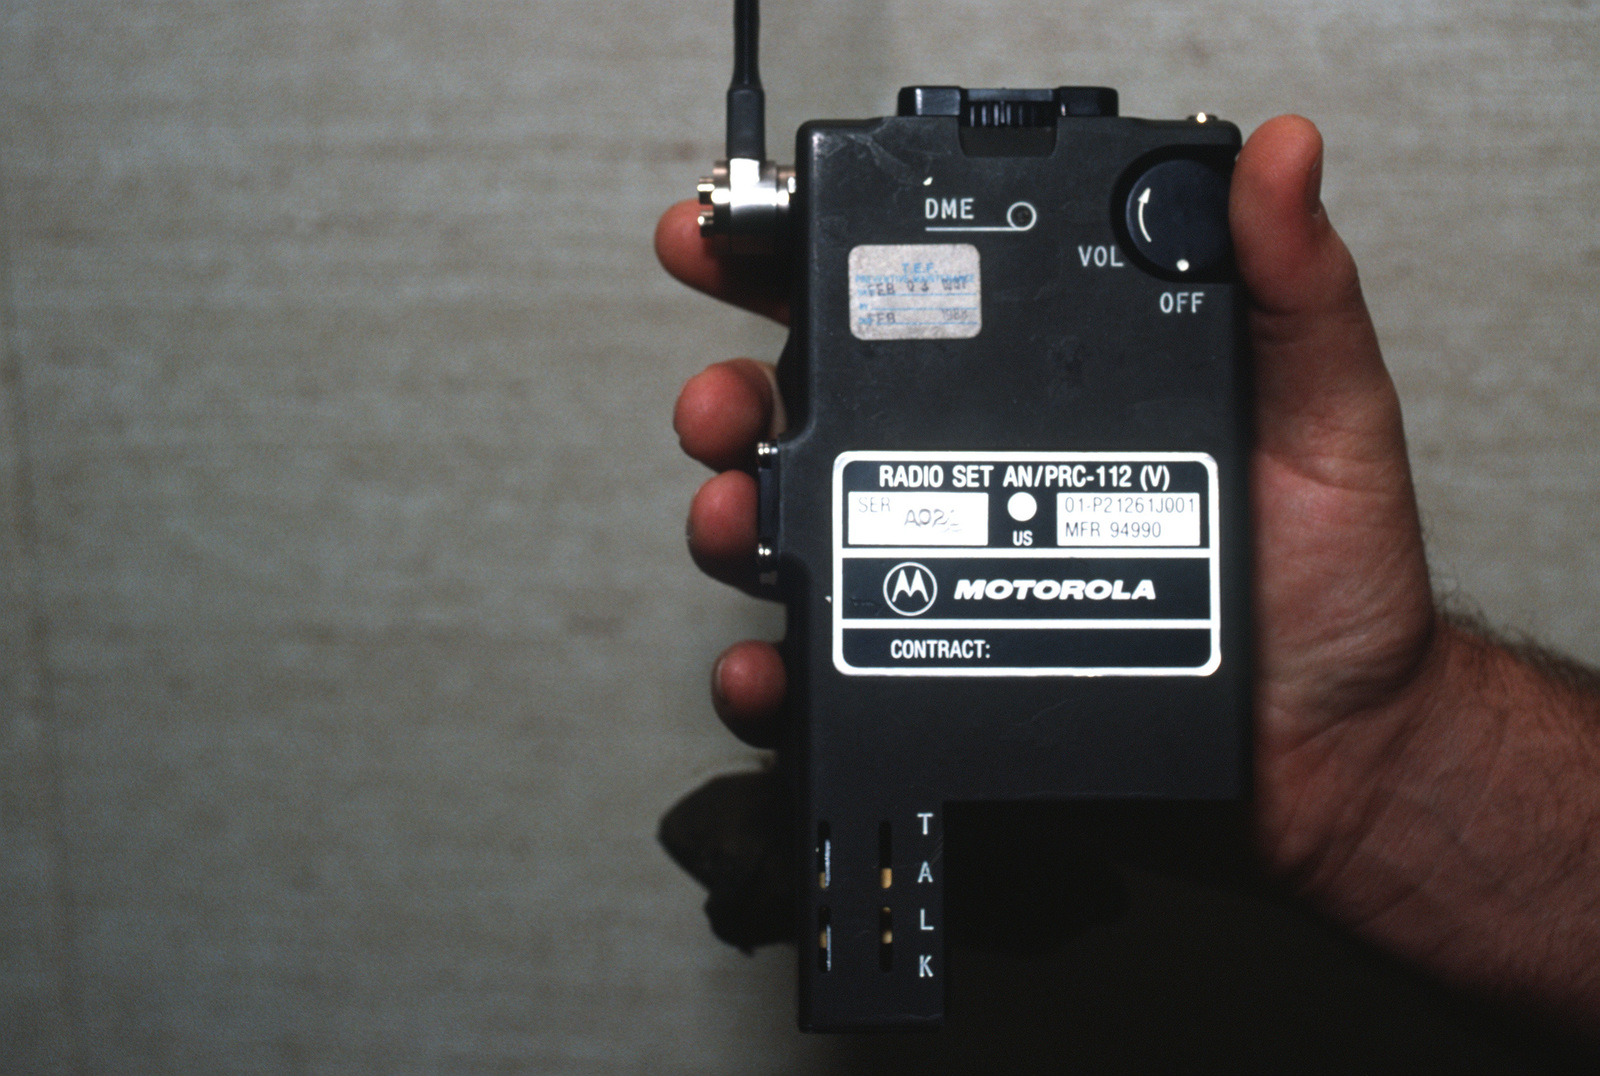 A close-up view of AN/PRC-112(V) radio set without battery   PICRYL